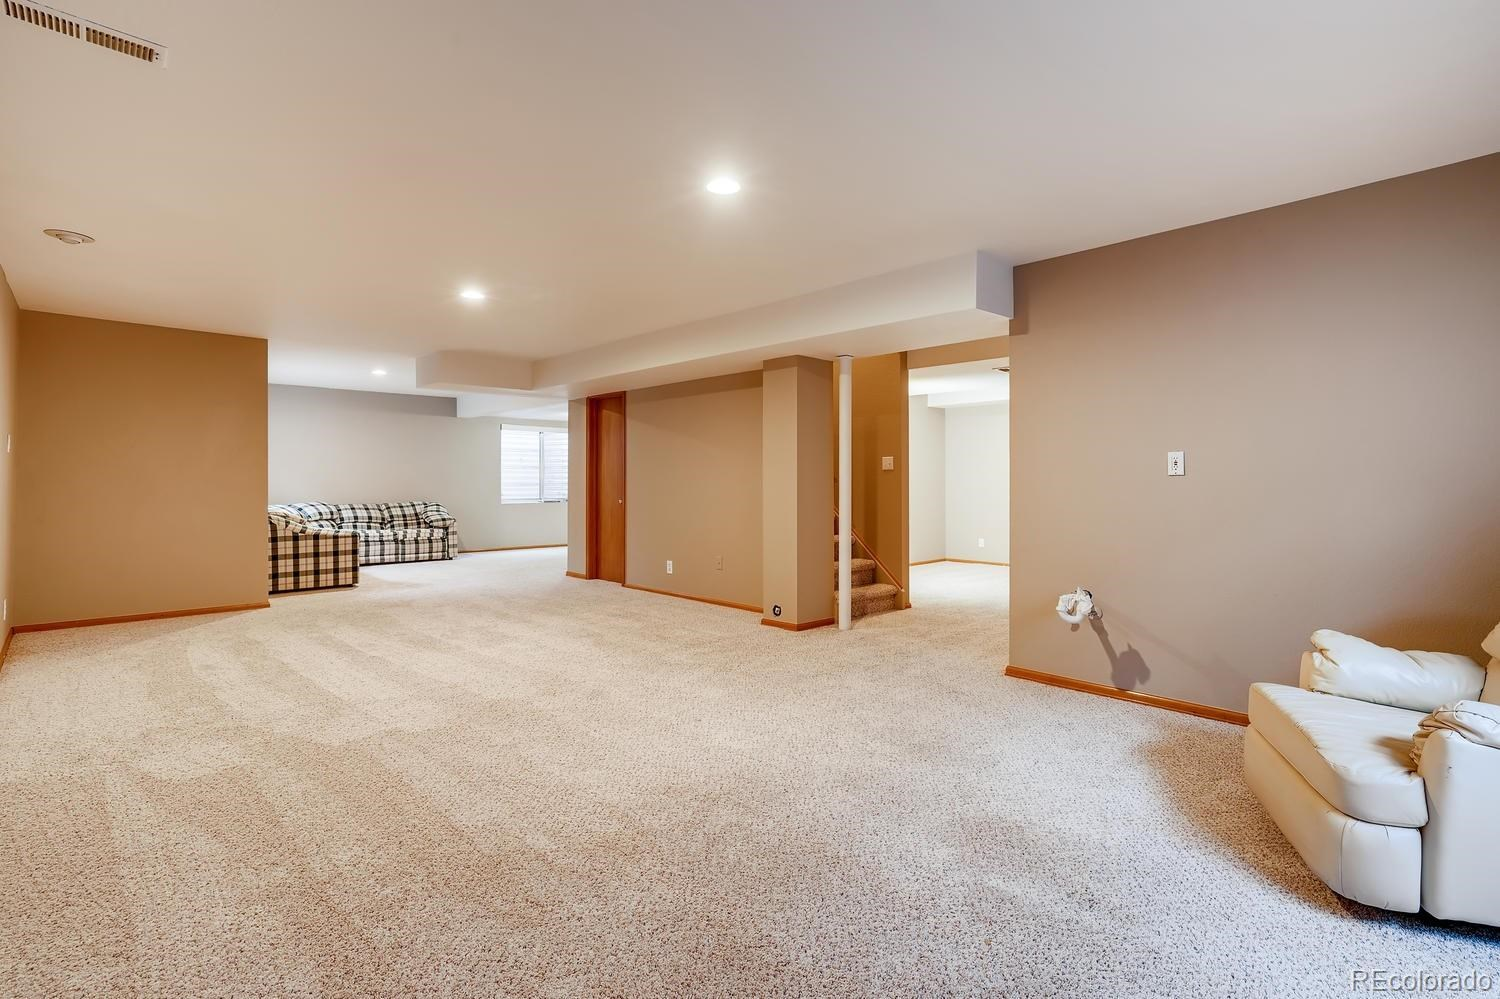 MLS# 6431155 - 23 - 6773 W 98th Circle, Westminster, CO 80021